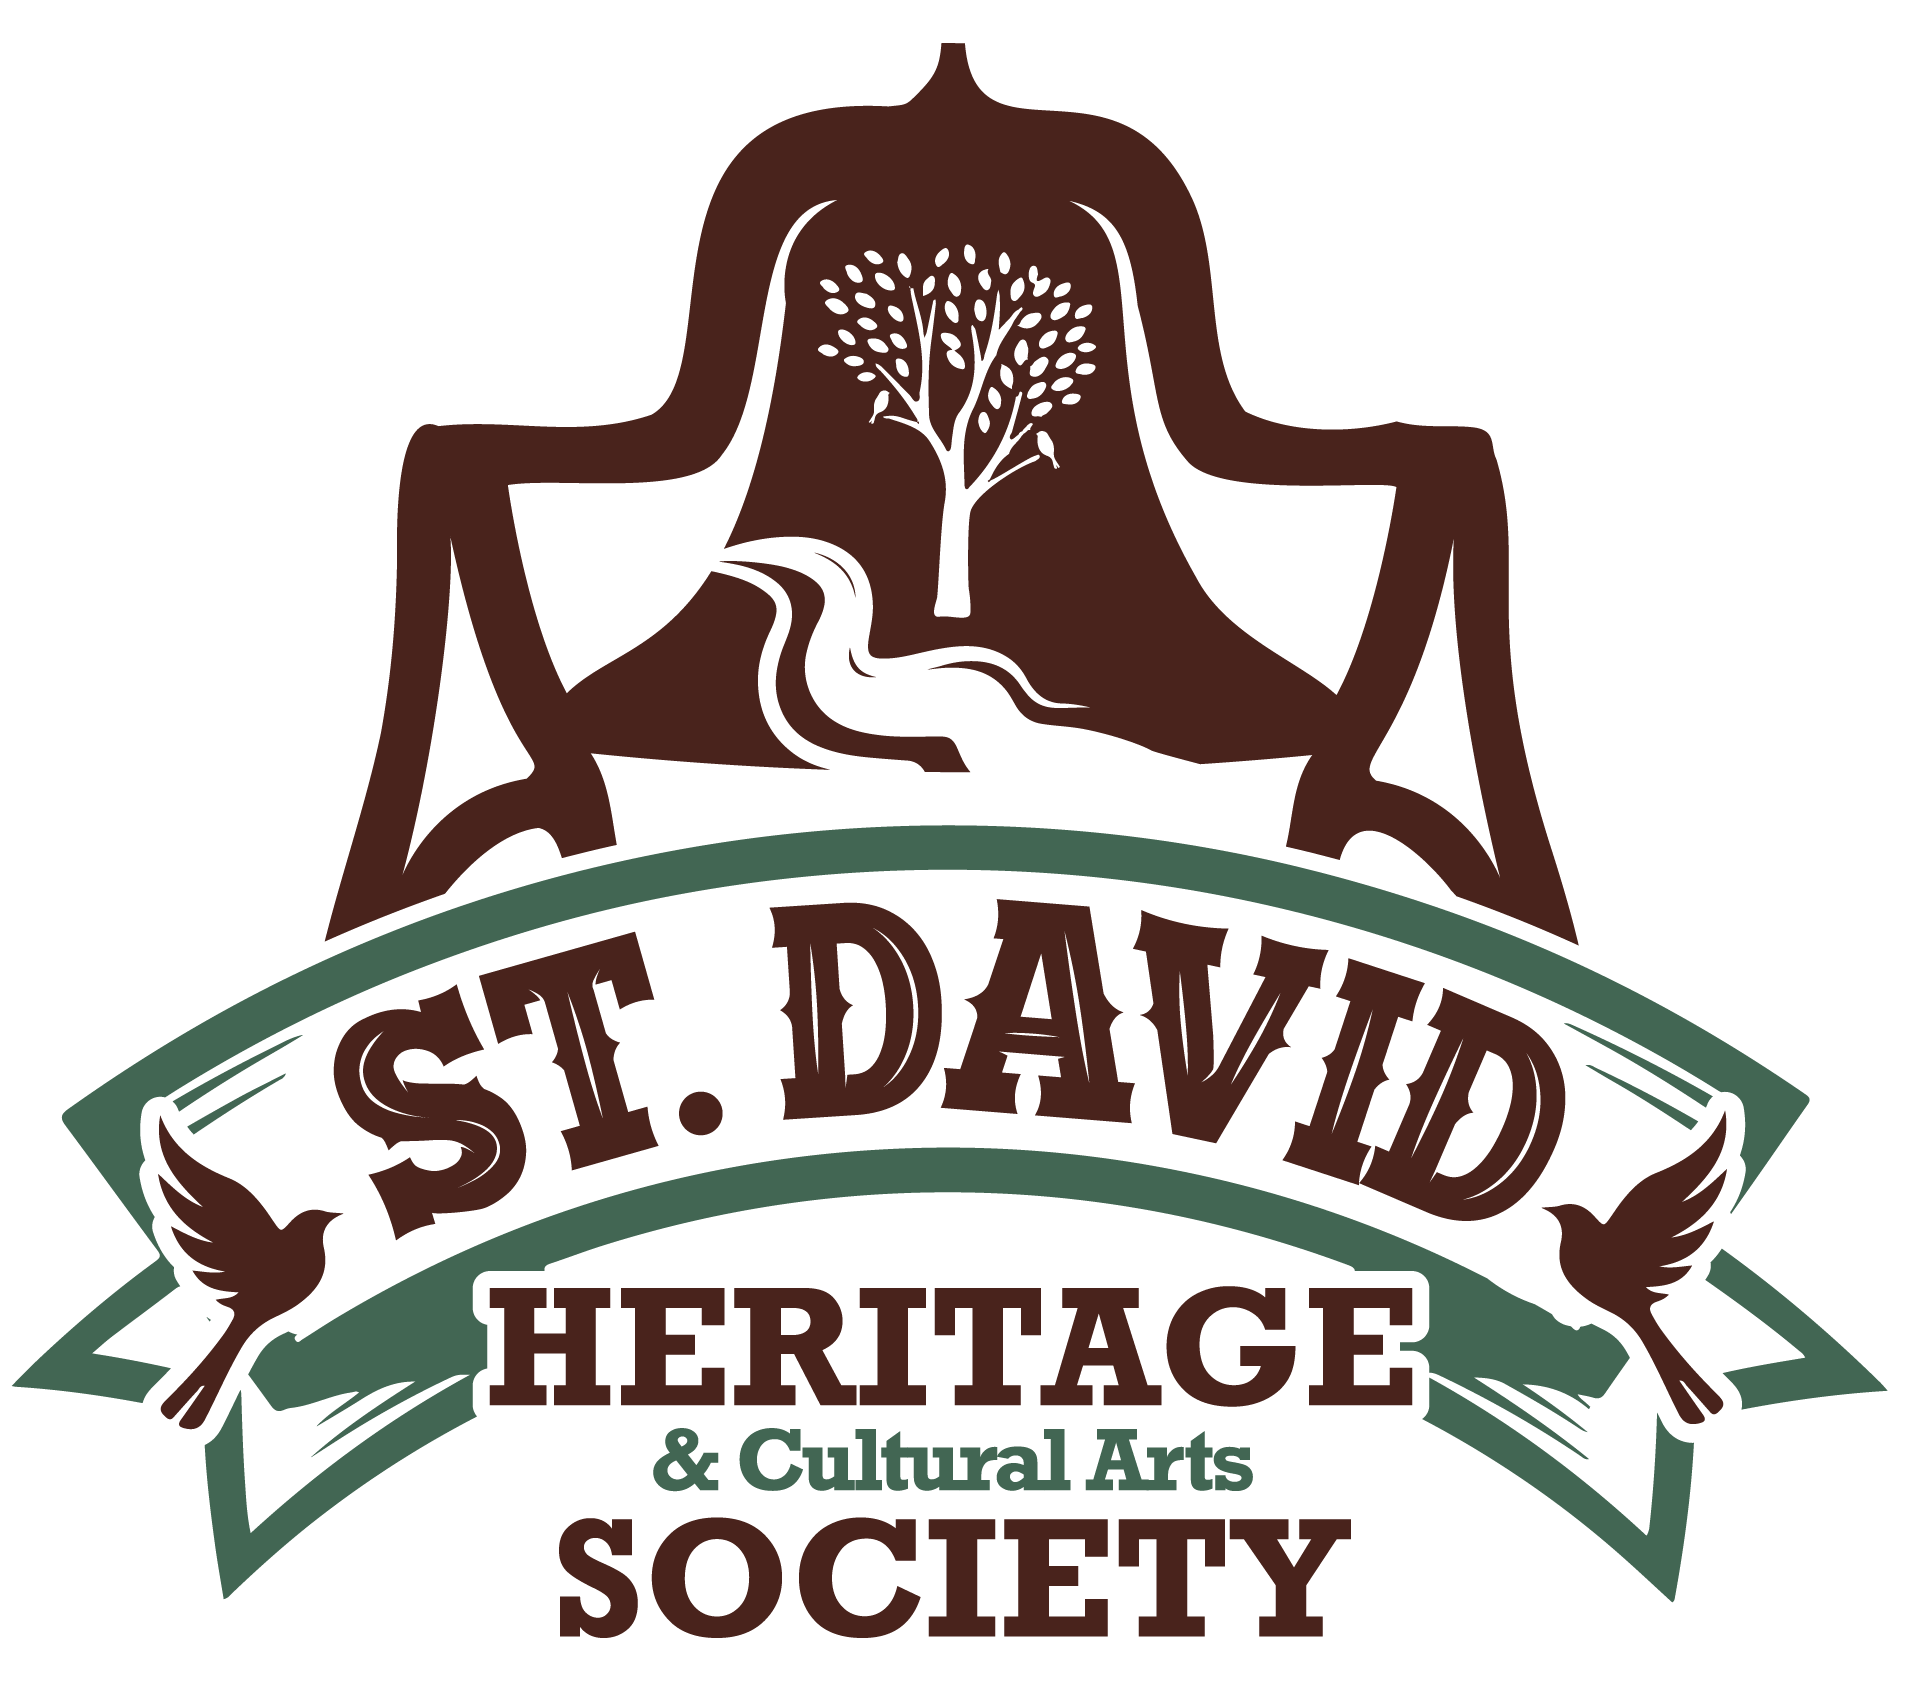 St. David Heritage Society